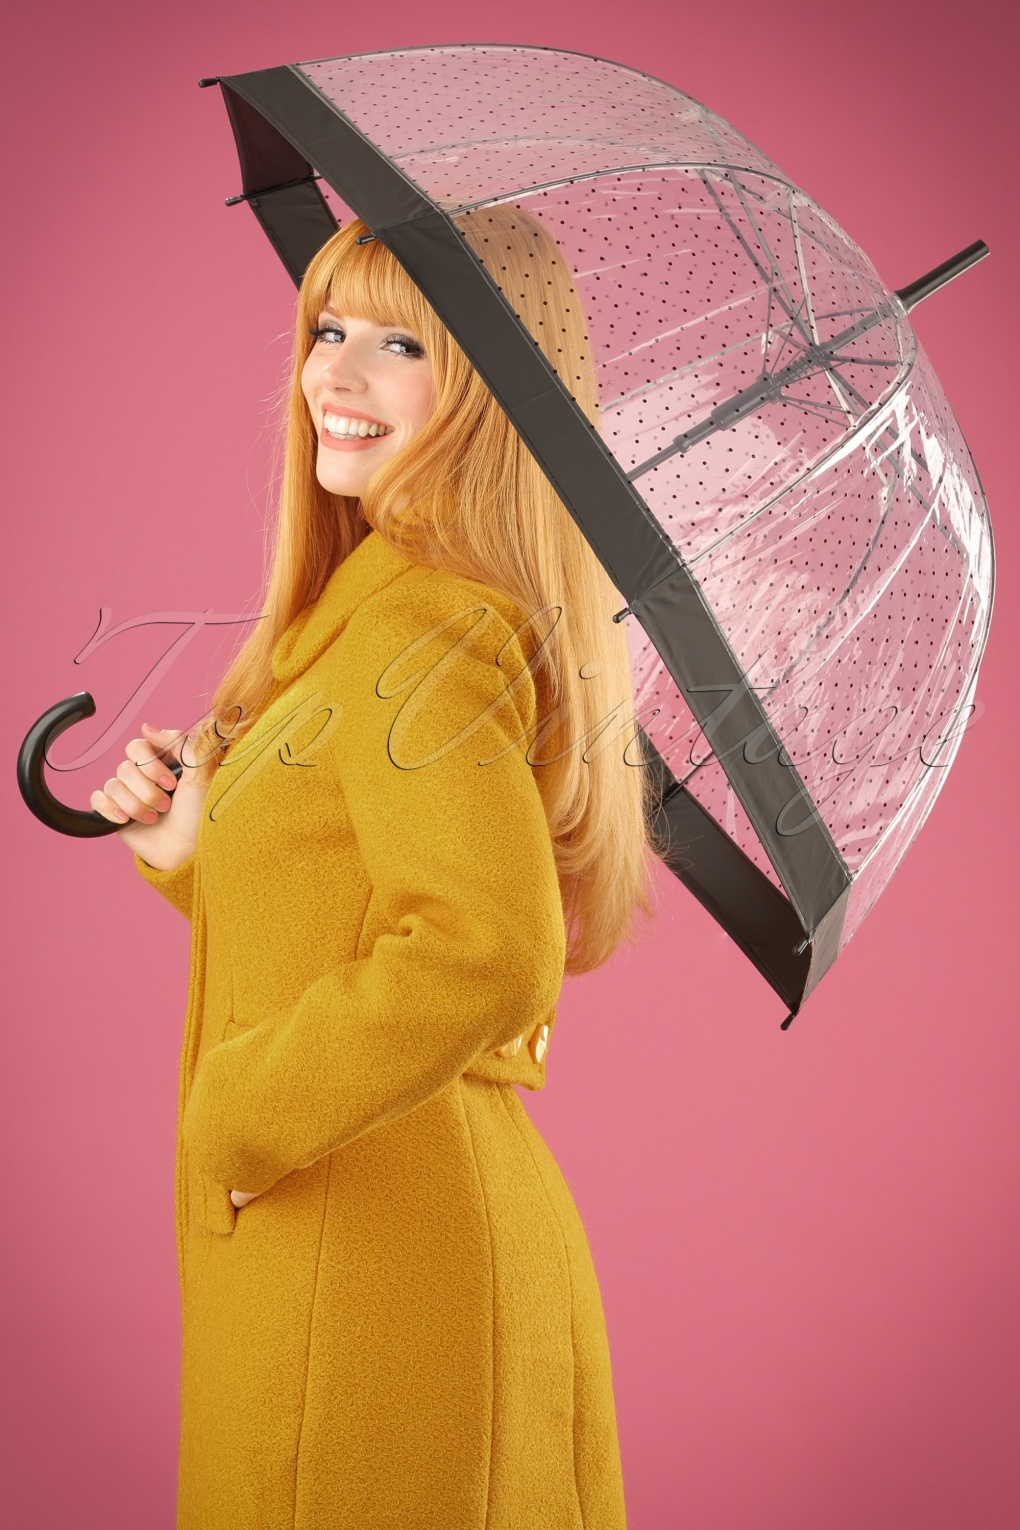 60s Fancy Dress and Quality Clothing 1960s UK 60s Lady Dot Transparent Dome Umbrella in Black £15.99 AT vintagedancer.com